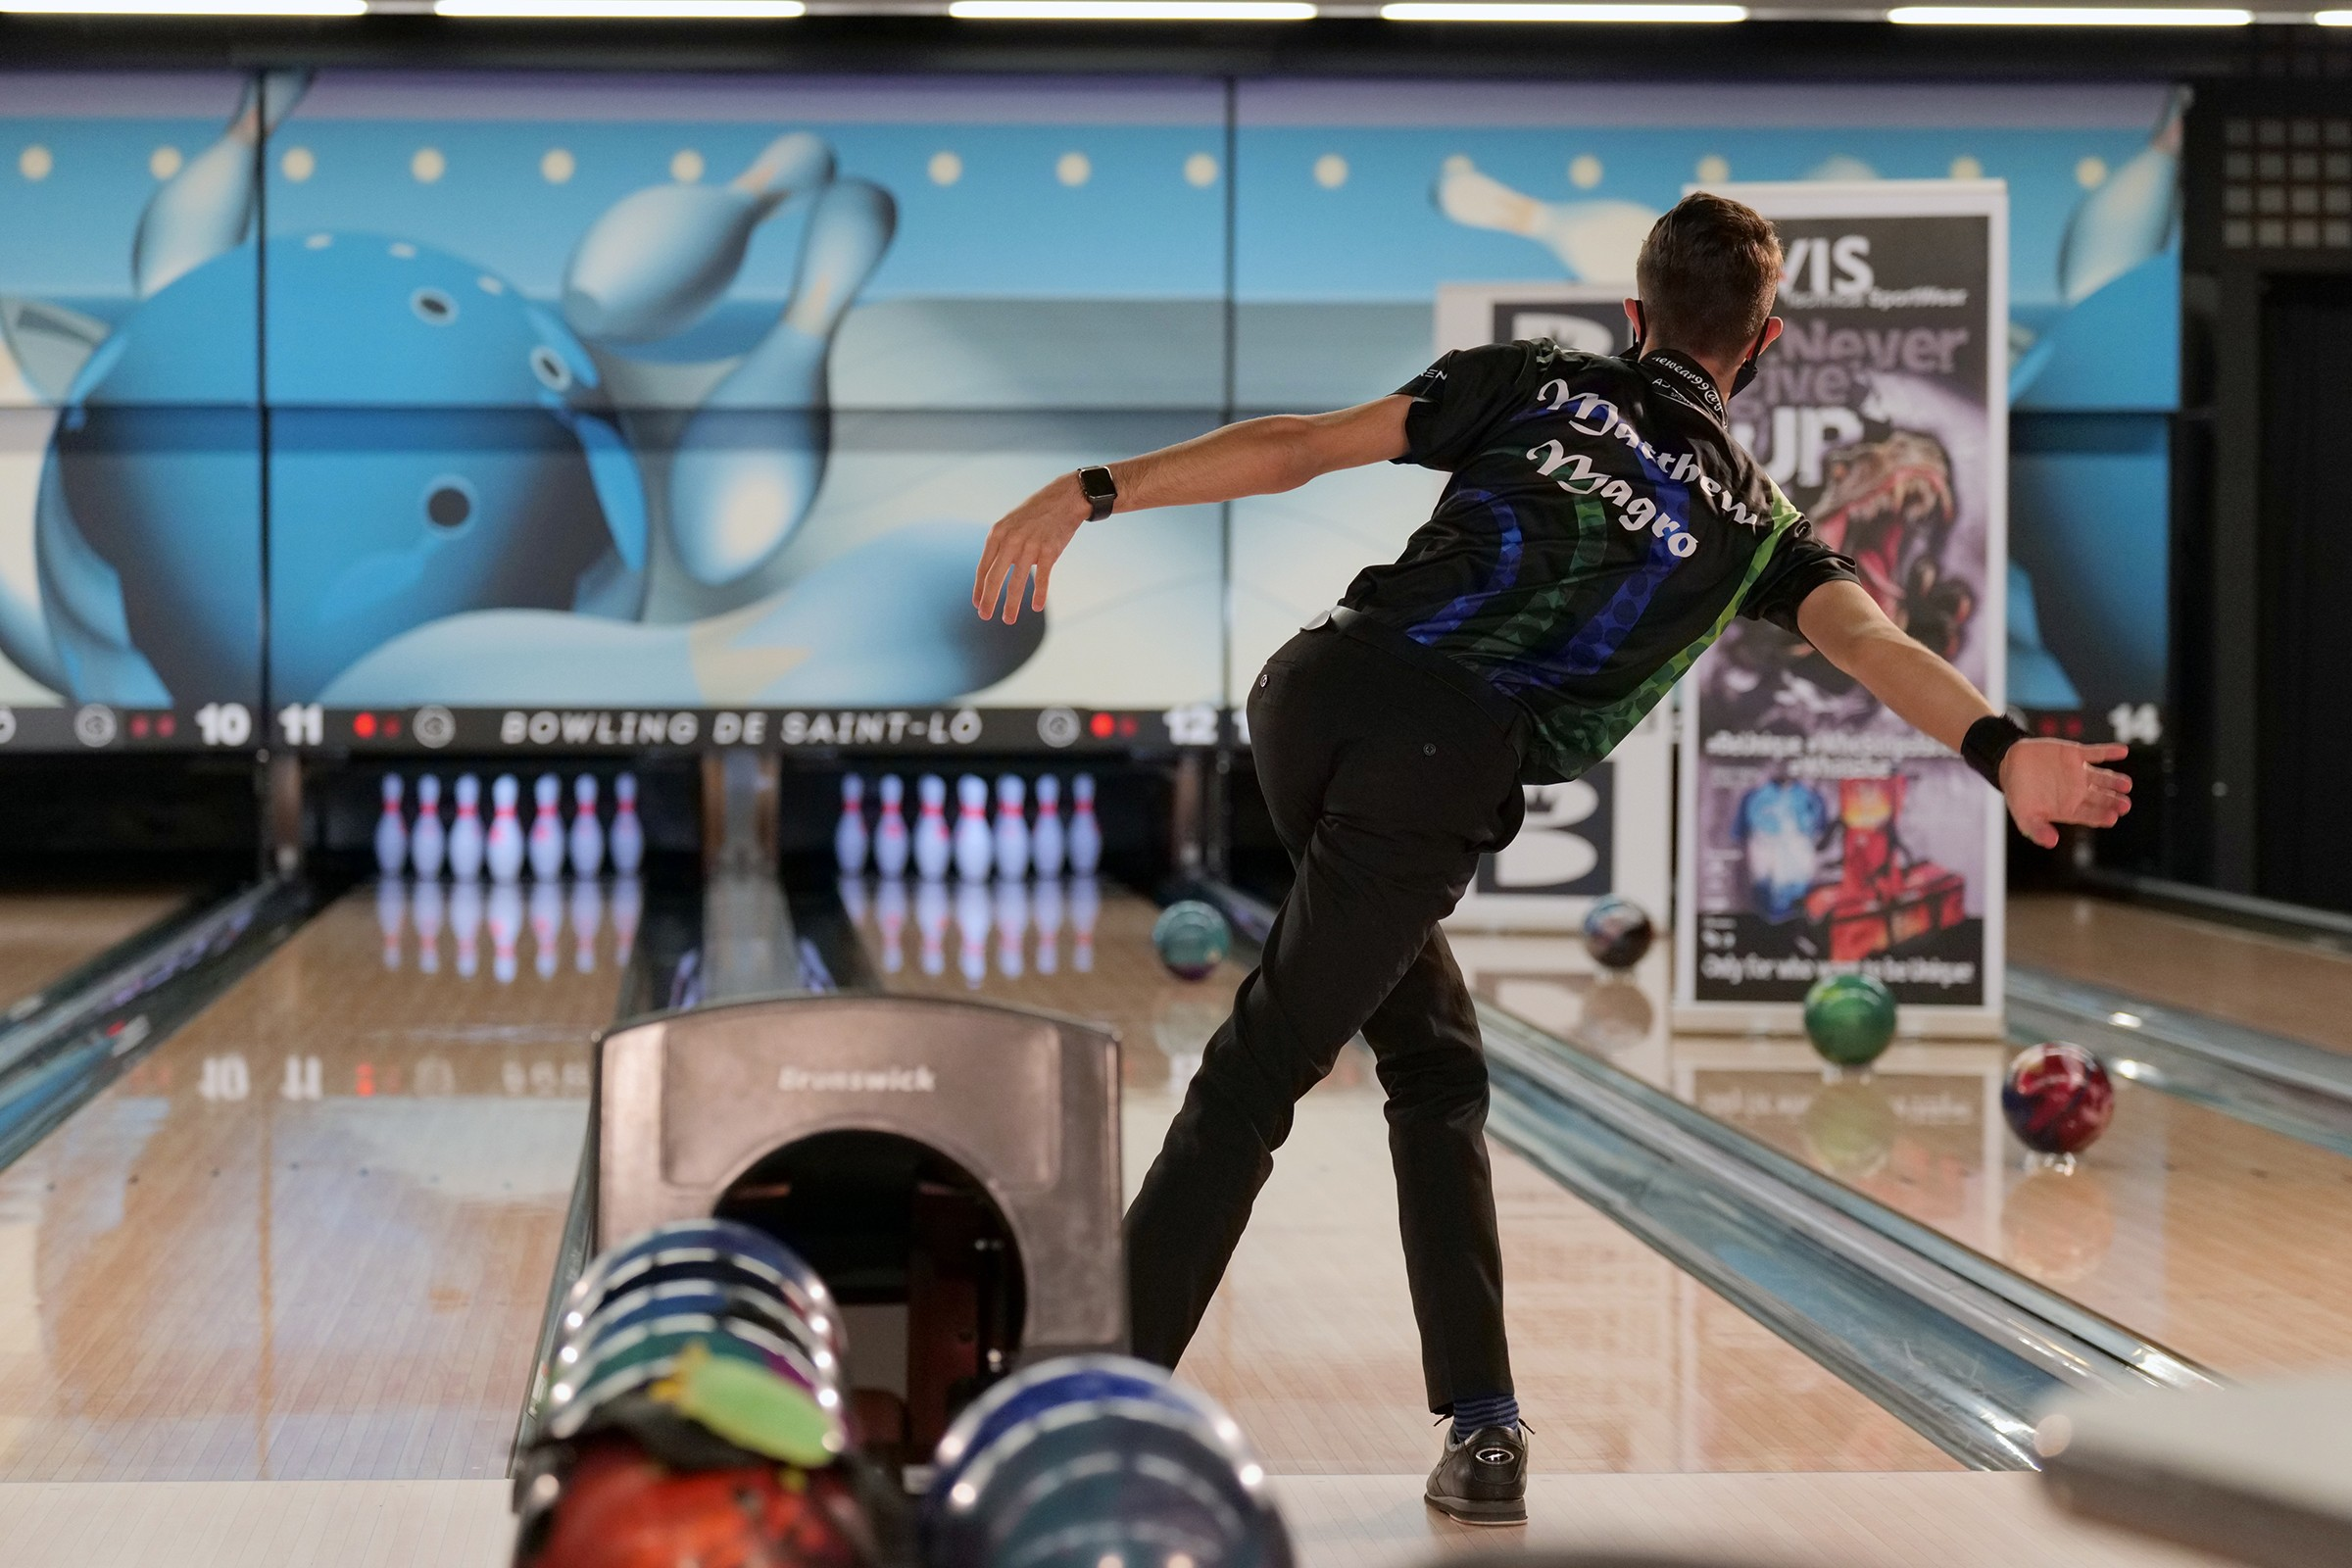 Bowling promotion tour 2020 saint lo photos ruel alain 16